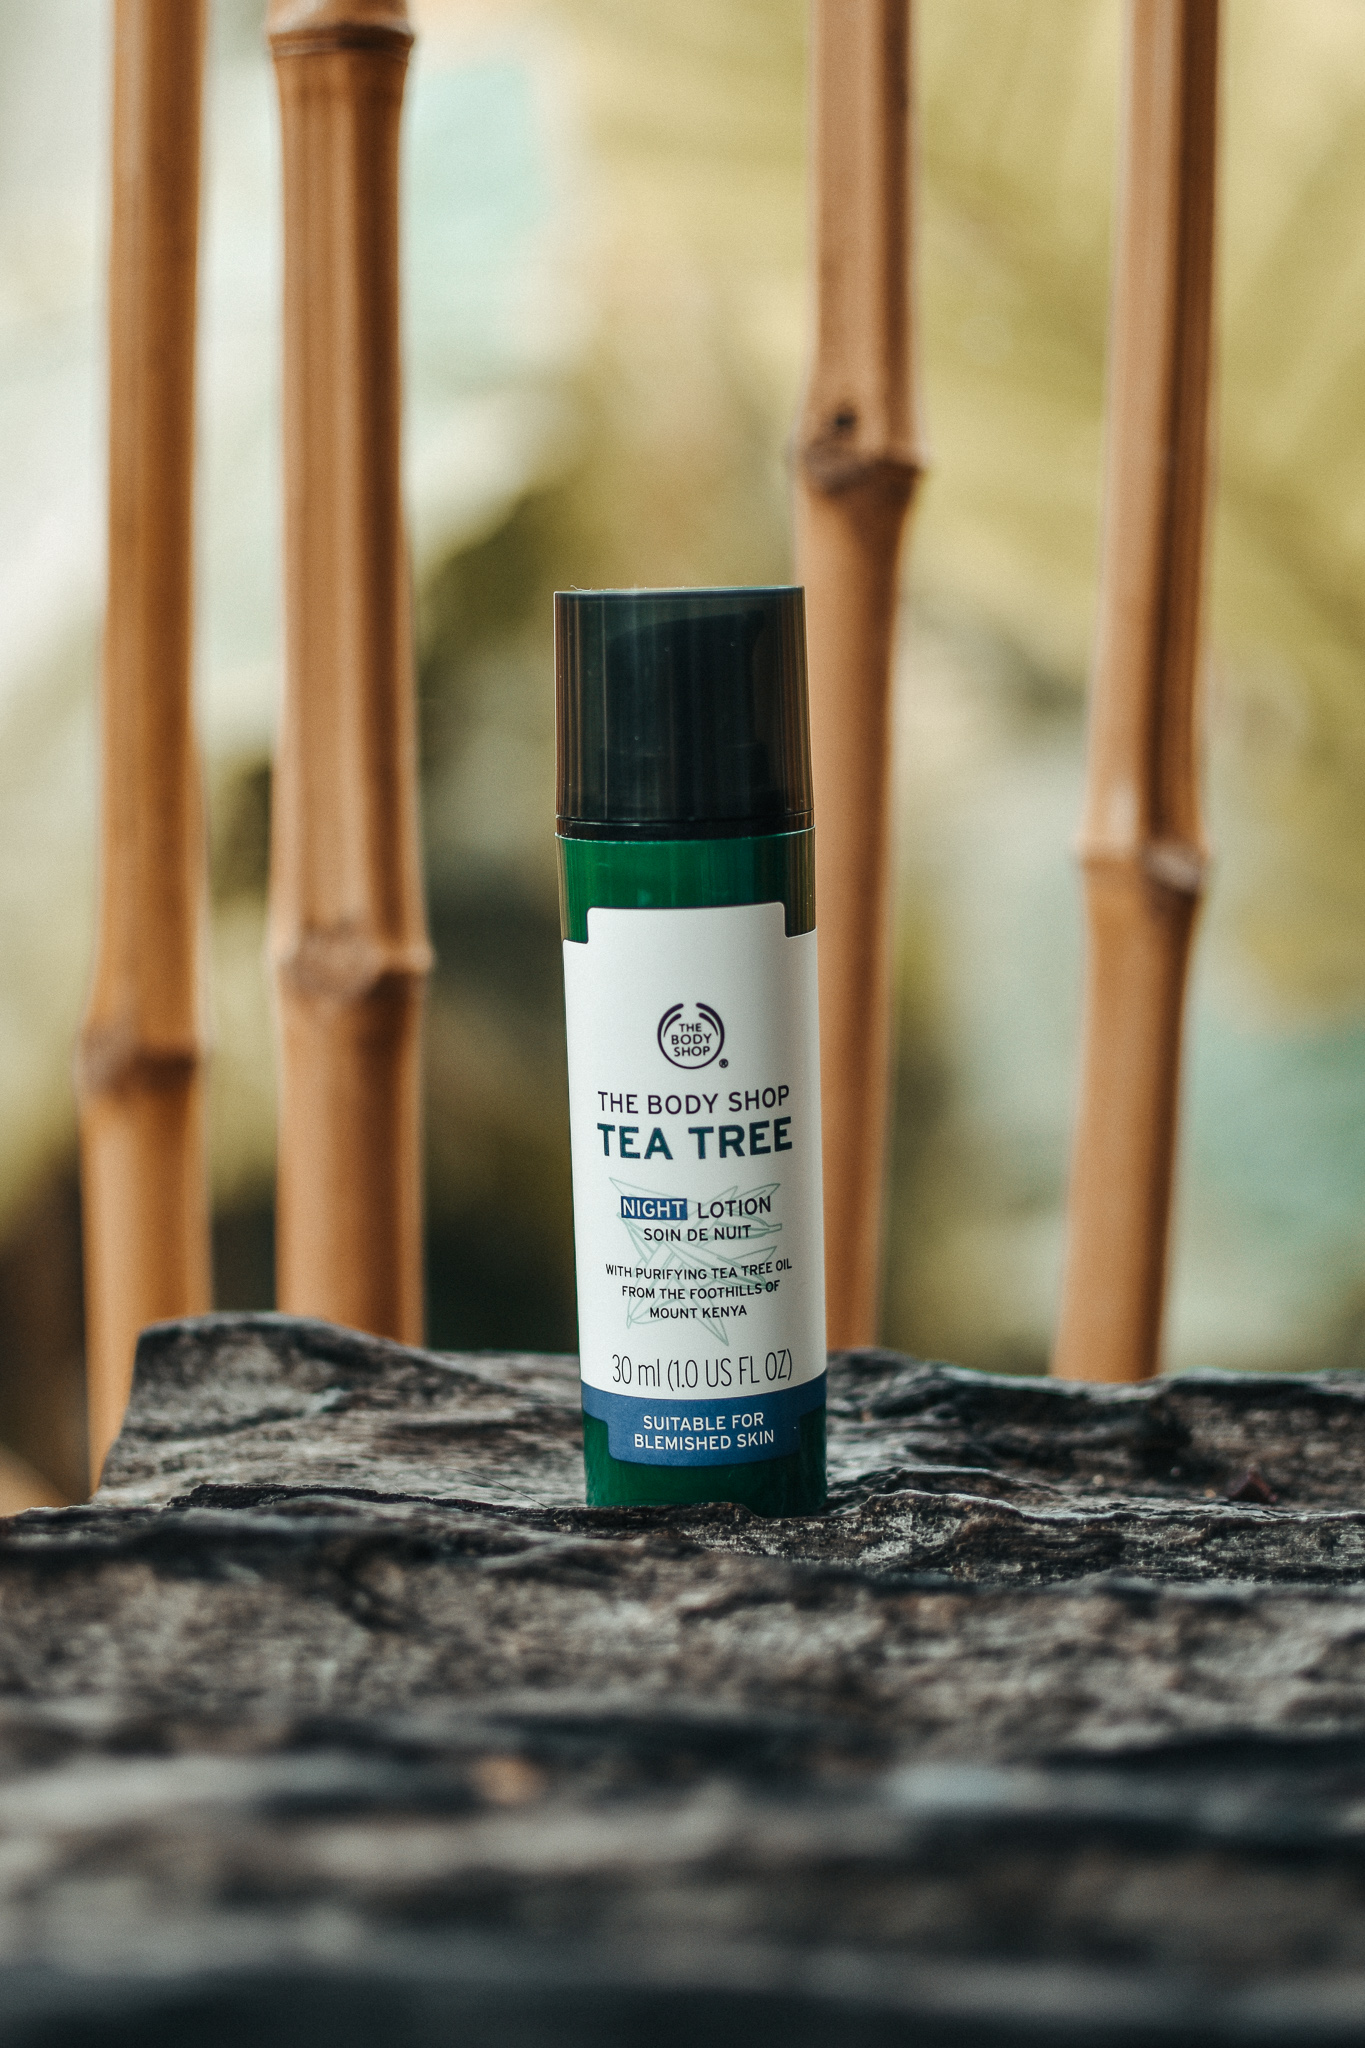 The Body Shop Tea Trea Oil Nighi